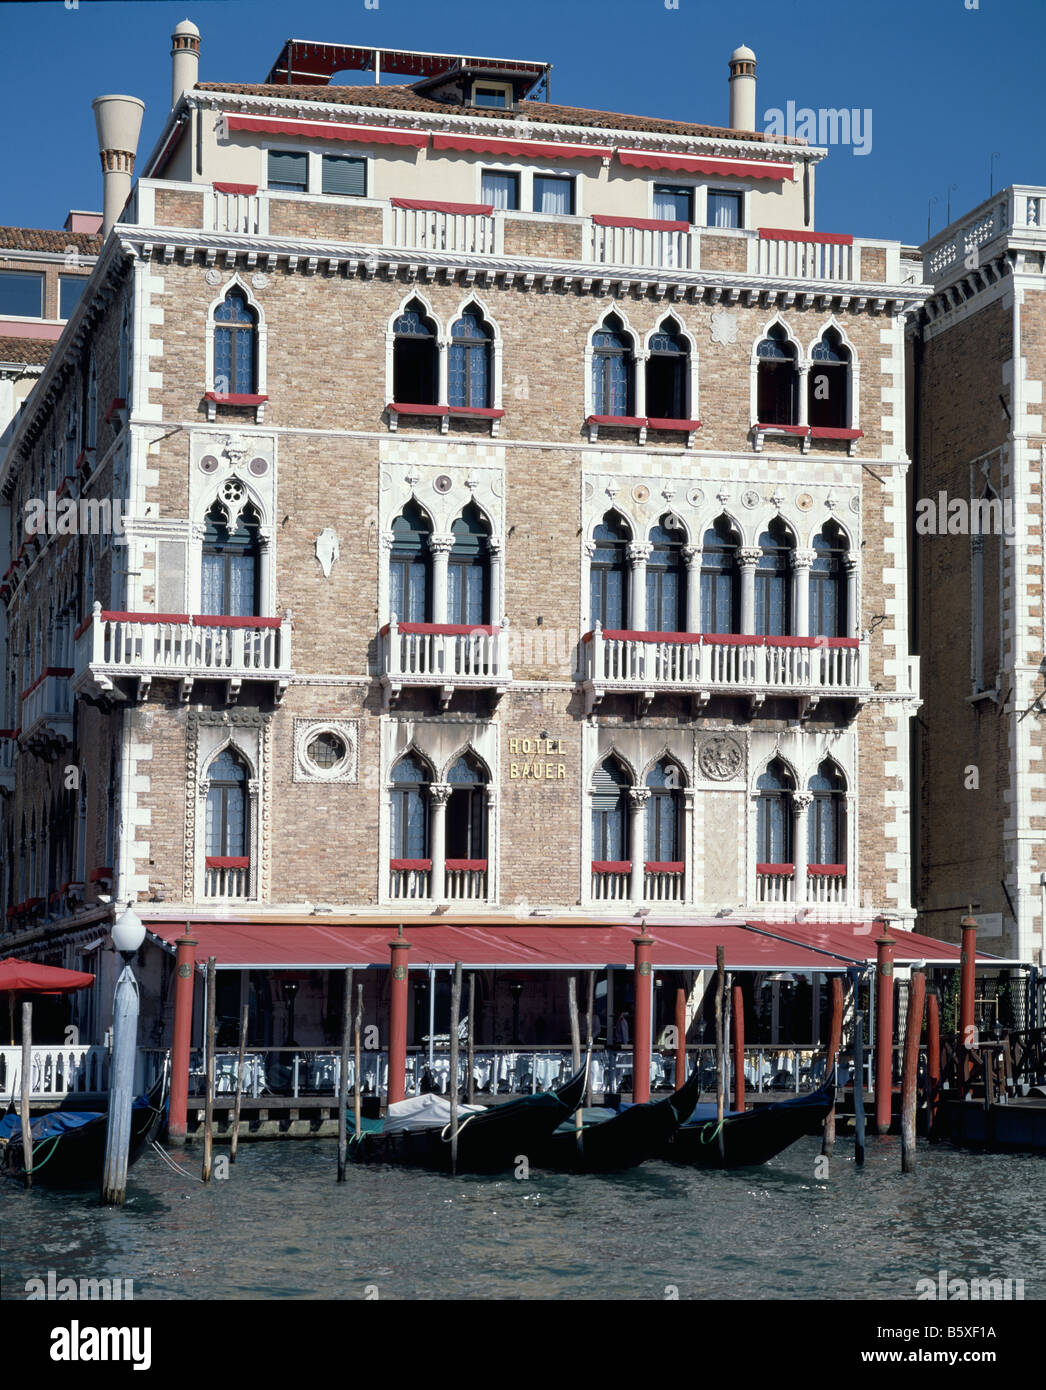 Bauer Hotel, Venice - Stock Image